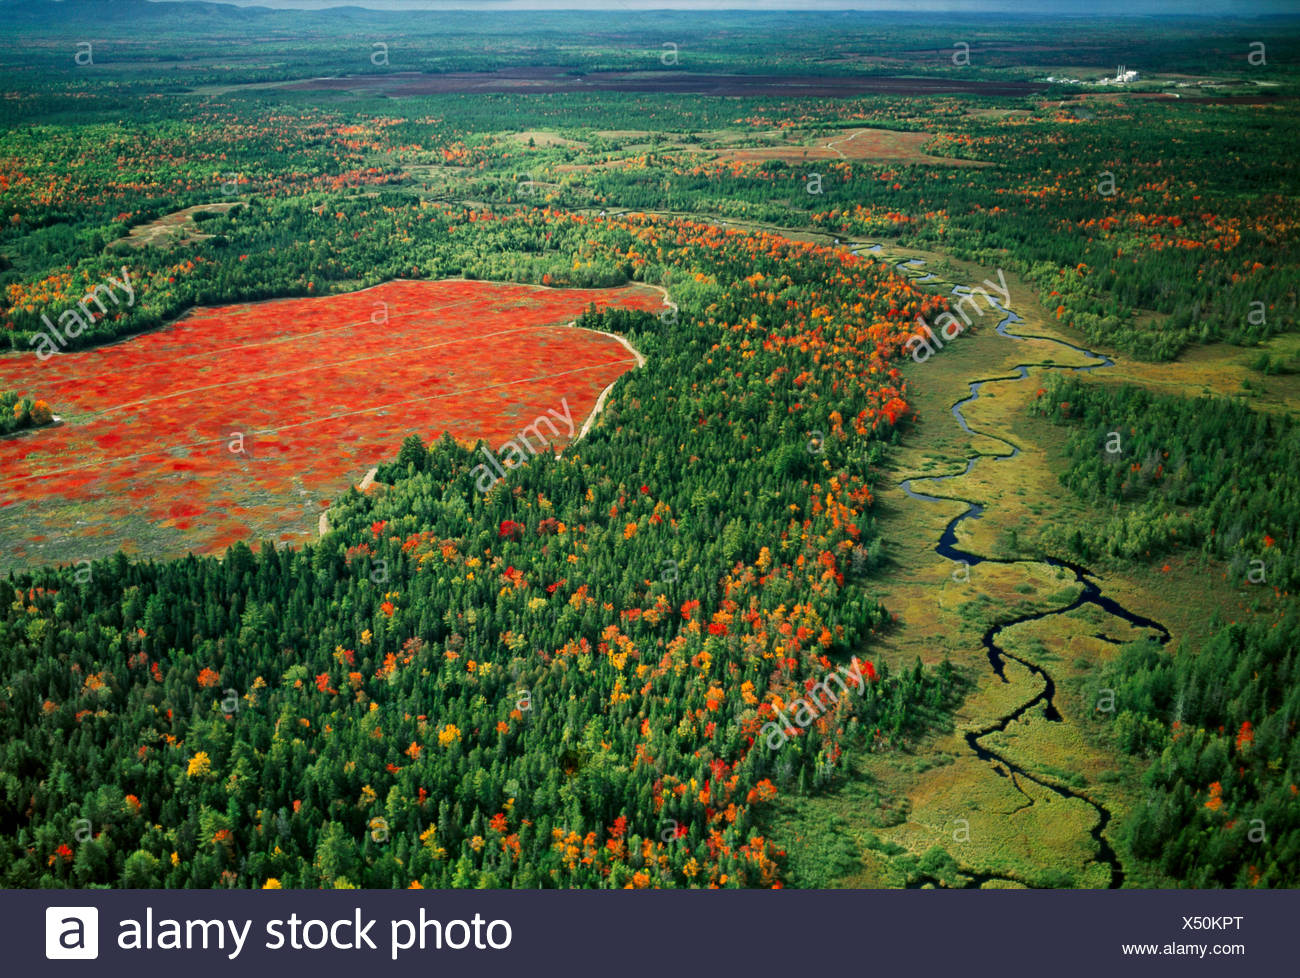 Agriculture - Aerial view of a lowbush blueberry field (barrens) in Autumn / Maine, USA. - Stock Image